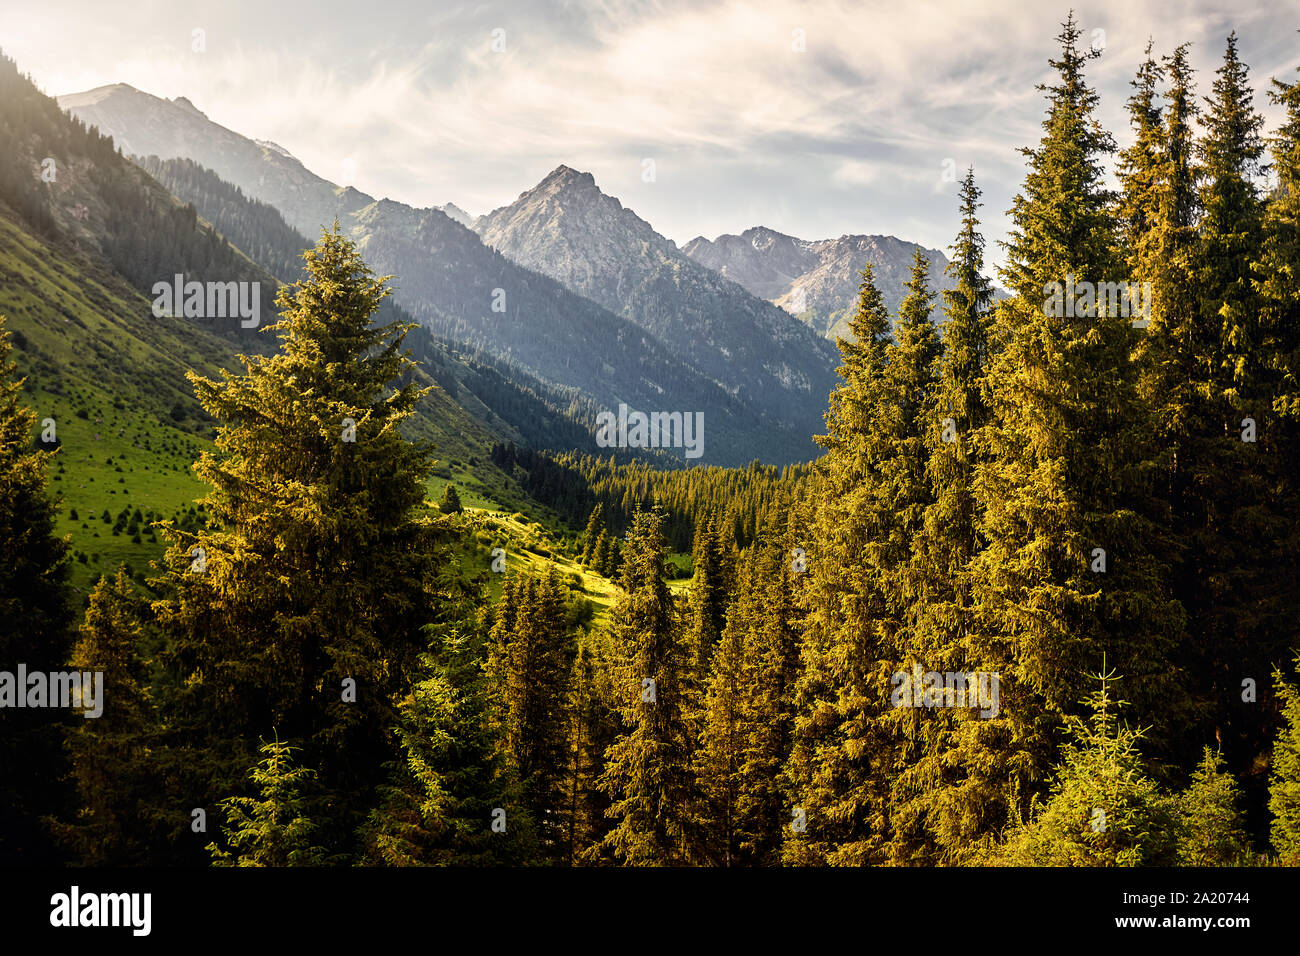 Landscape of mountain valley with spruce trees and snowy peak in Karakol national park, Kyrgyzstan Stock Photo